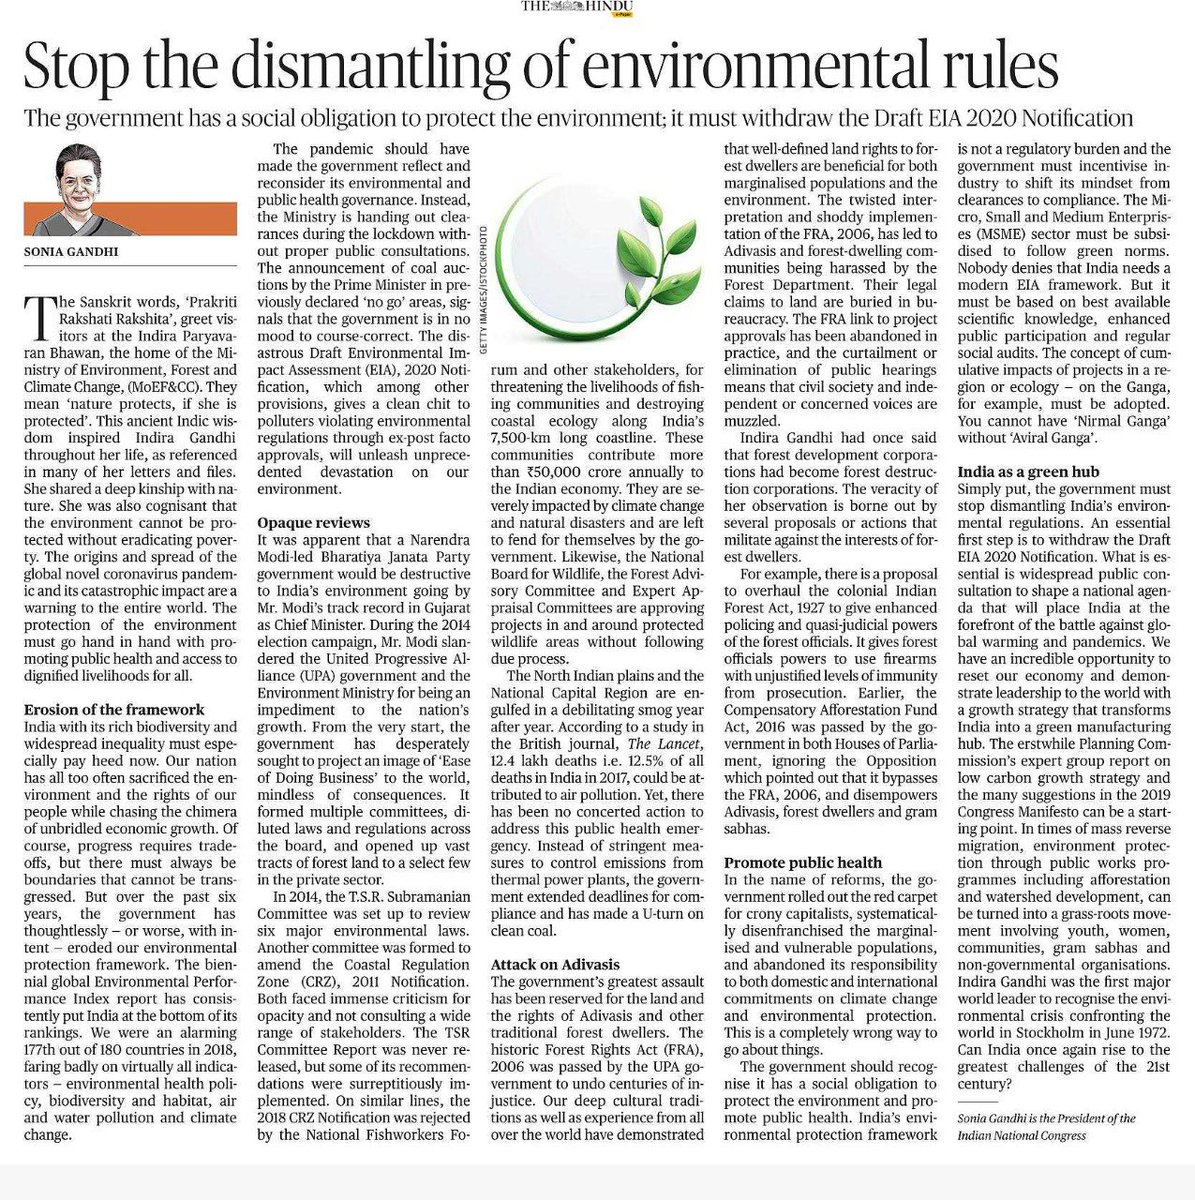 Since the BJP govt came to power, it has systematically dismantled environmental laws, grabbed the land of Adivasis & turned its back on international commitments to climate change. The EIA notification must be withdrawn by the govt, writes @INCIndia President Sonia Gandhi ji